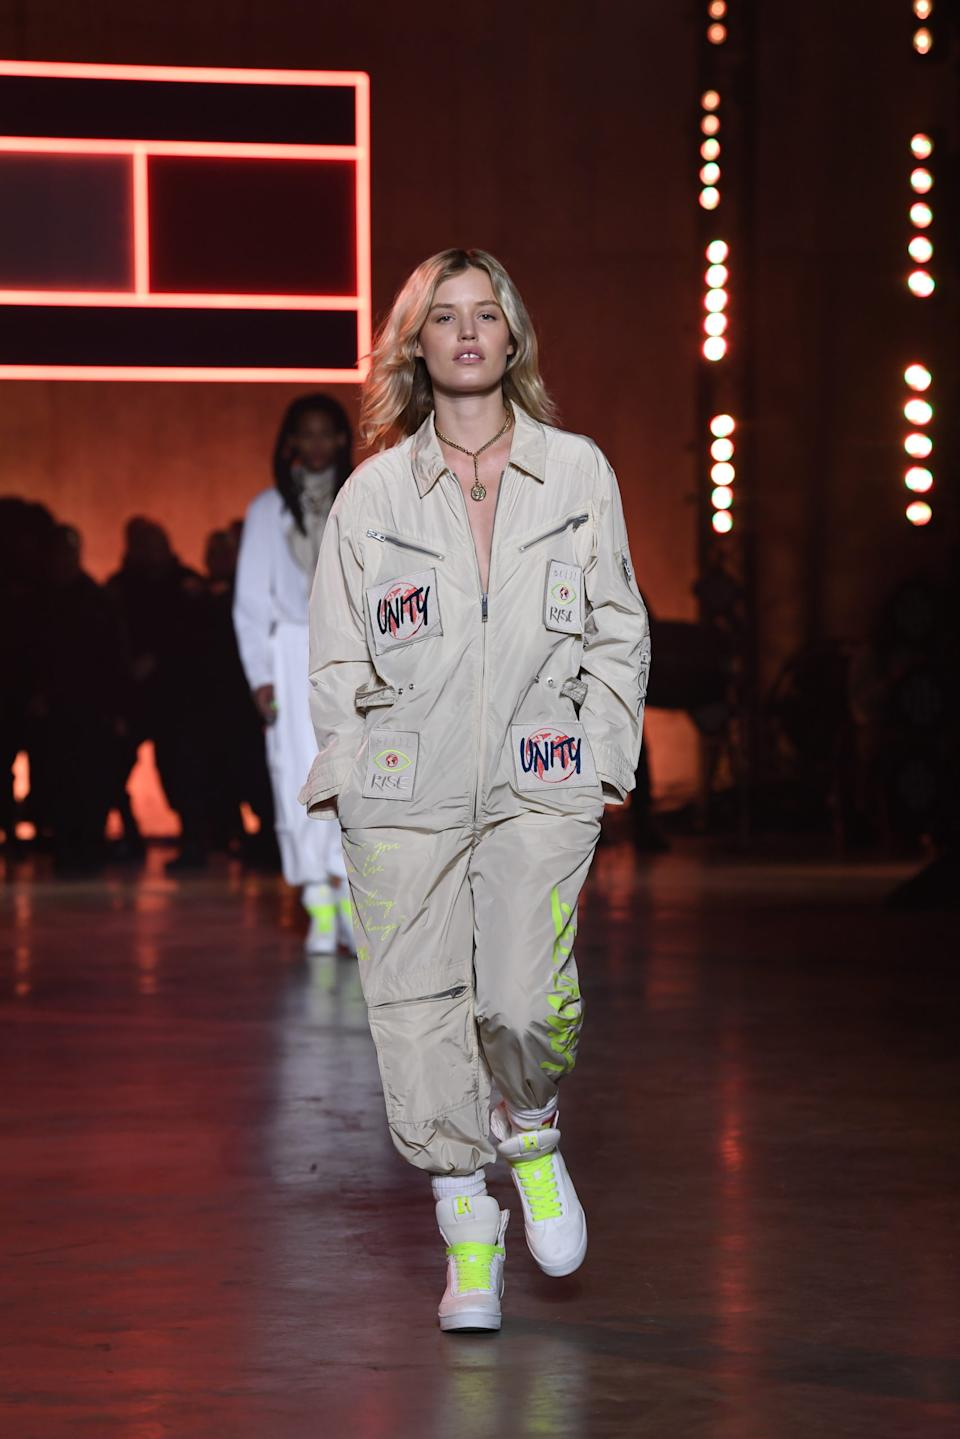 Georgia May Jagger walks the runway at the Tommy Hilfiger show during London Fashion Week. (Tommy Hilfiger)